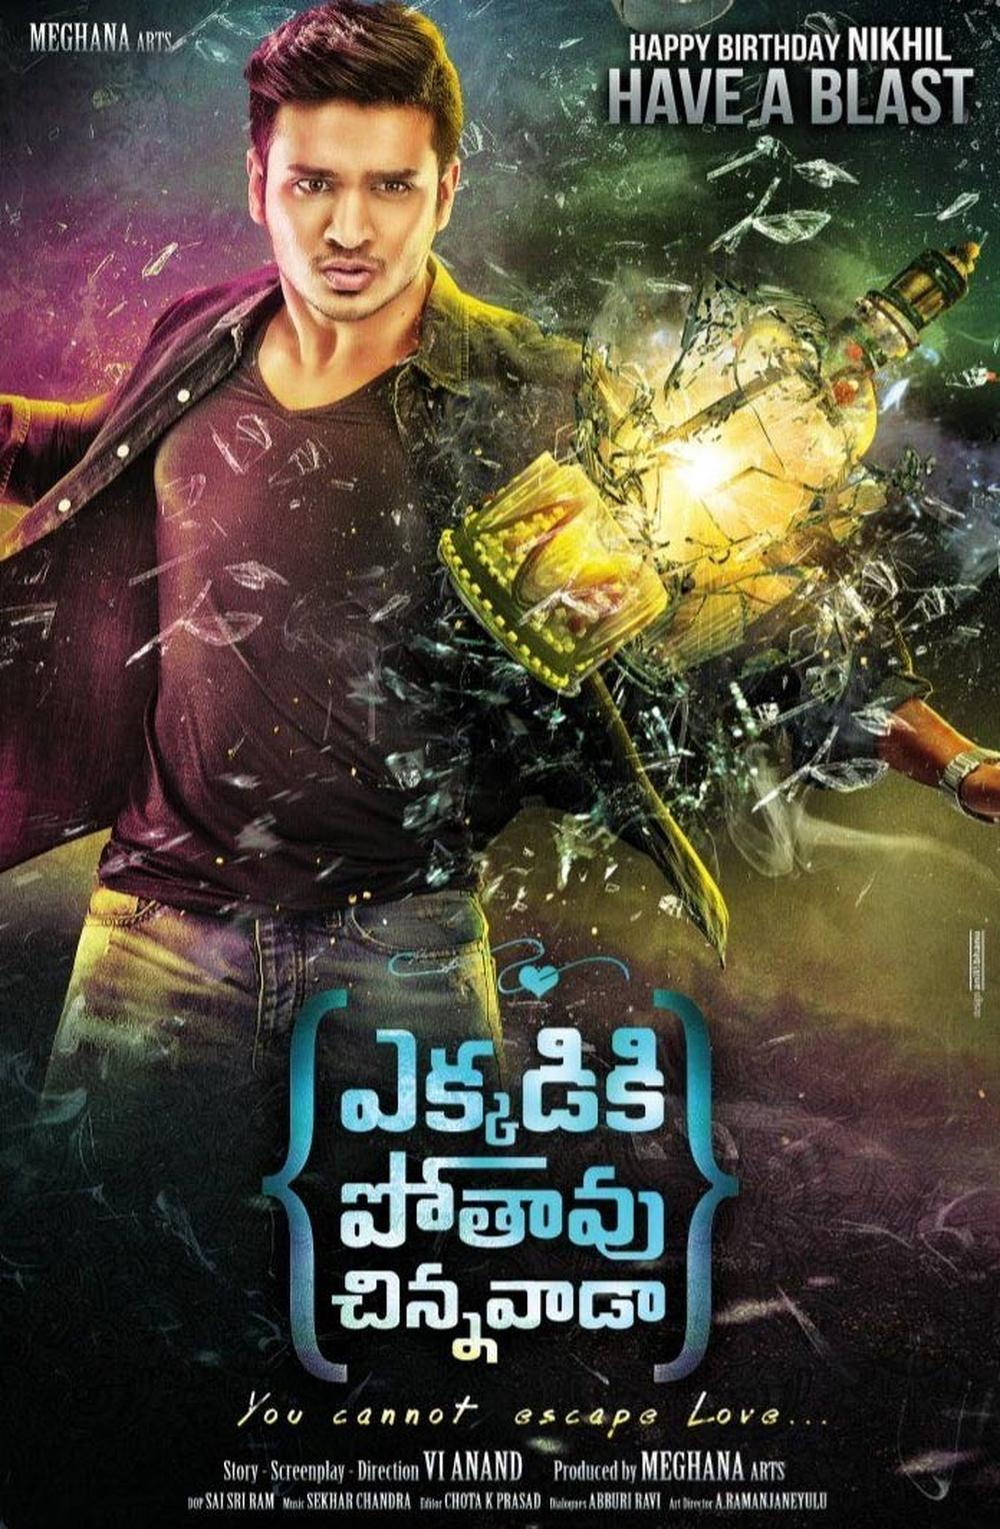 Ekkadiki Pothavu Chinnavada Aka Ekkadiki Pothavu Chinnavaada Movie Review Telugu Movie Review